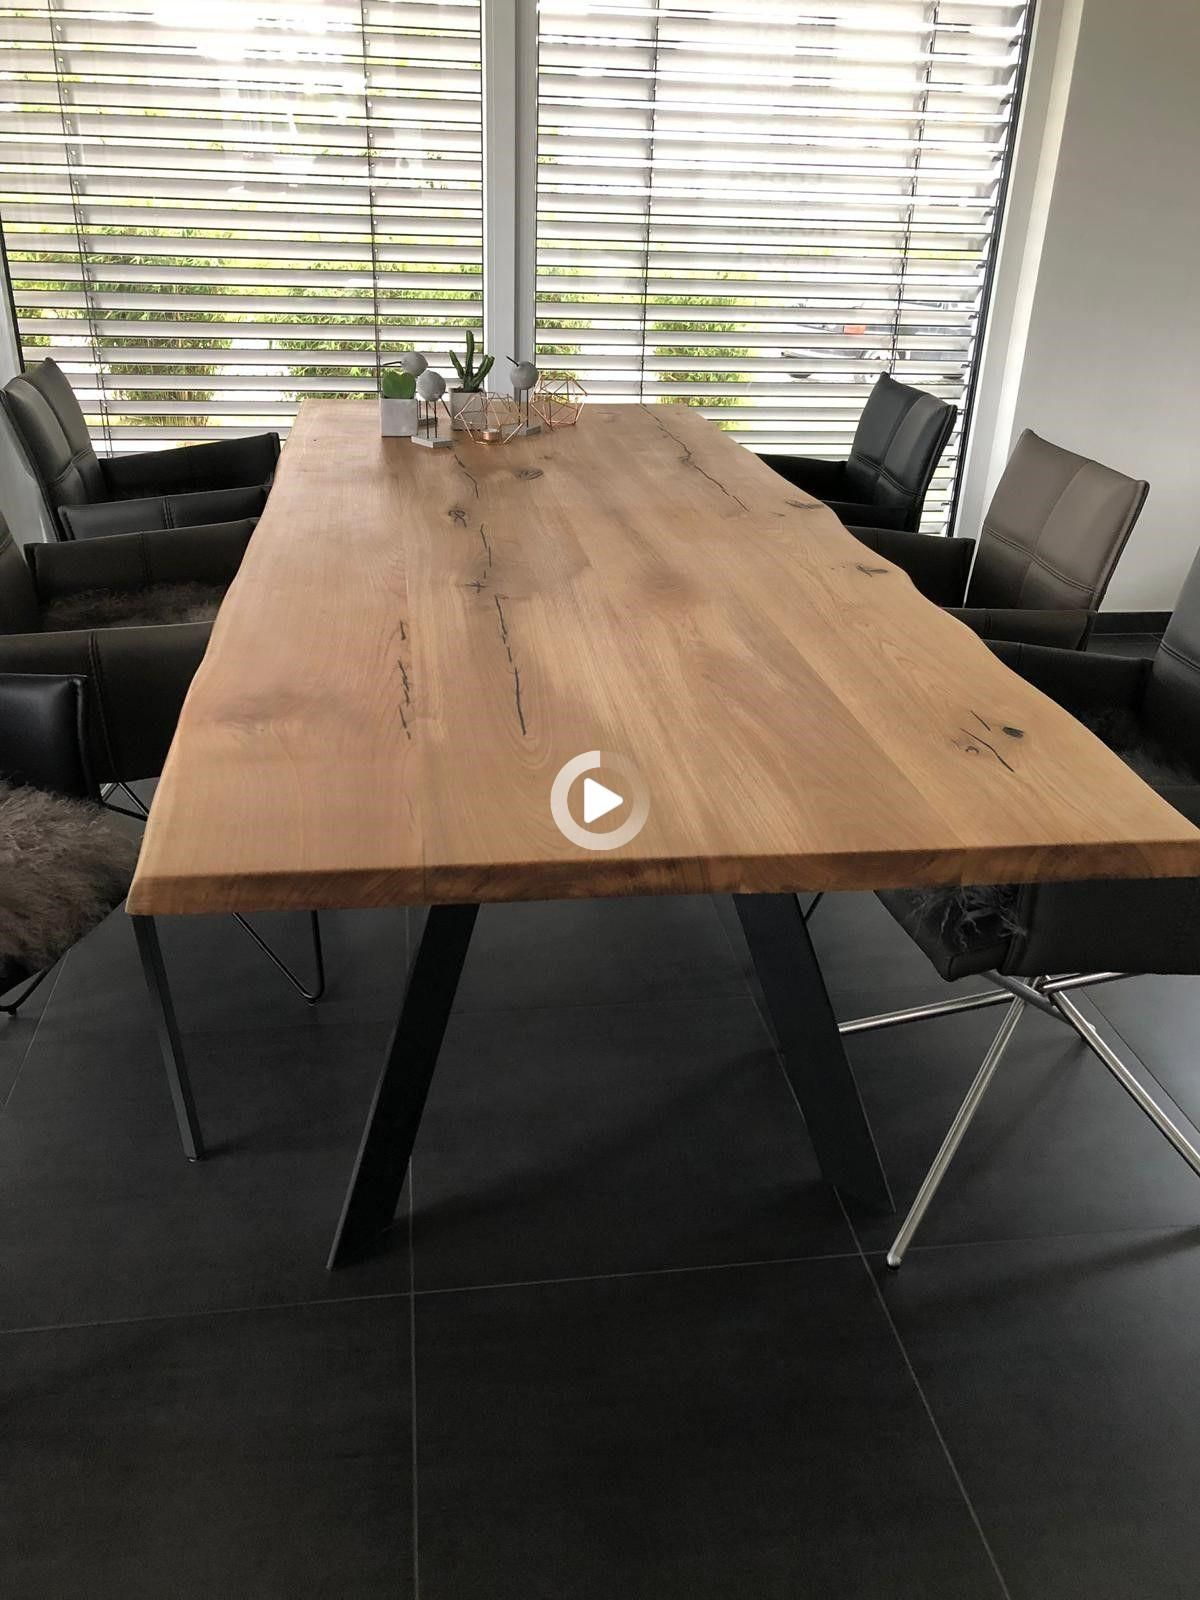 Super Tattoo Ideas F In 2021 Solid Oak Dining Table Table Dining Table